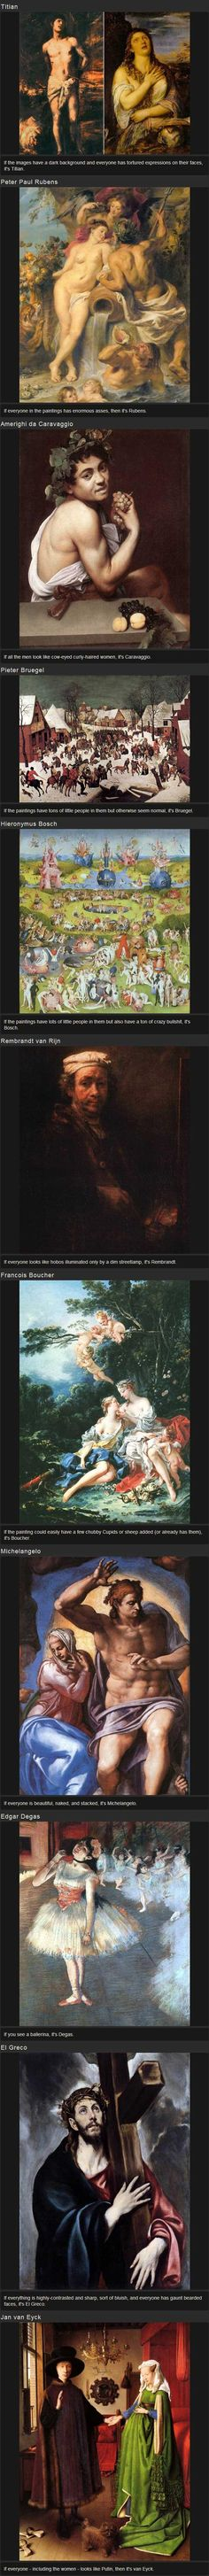 How to recognize the artists behind the paintings... Where was this when I was studying Art History!? Lolll